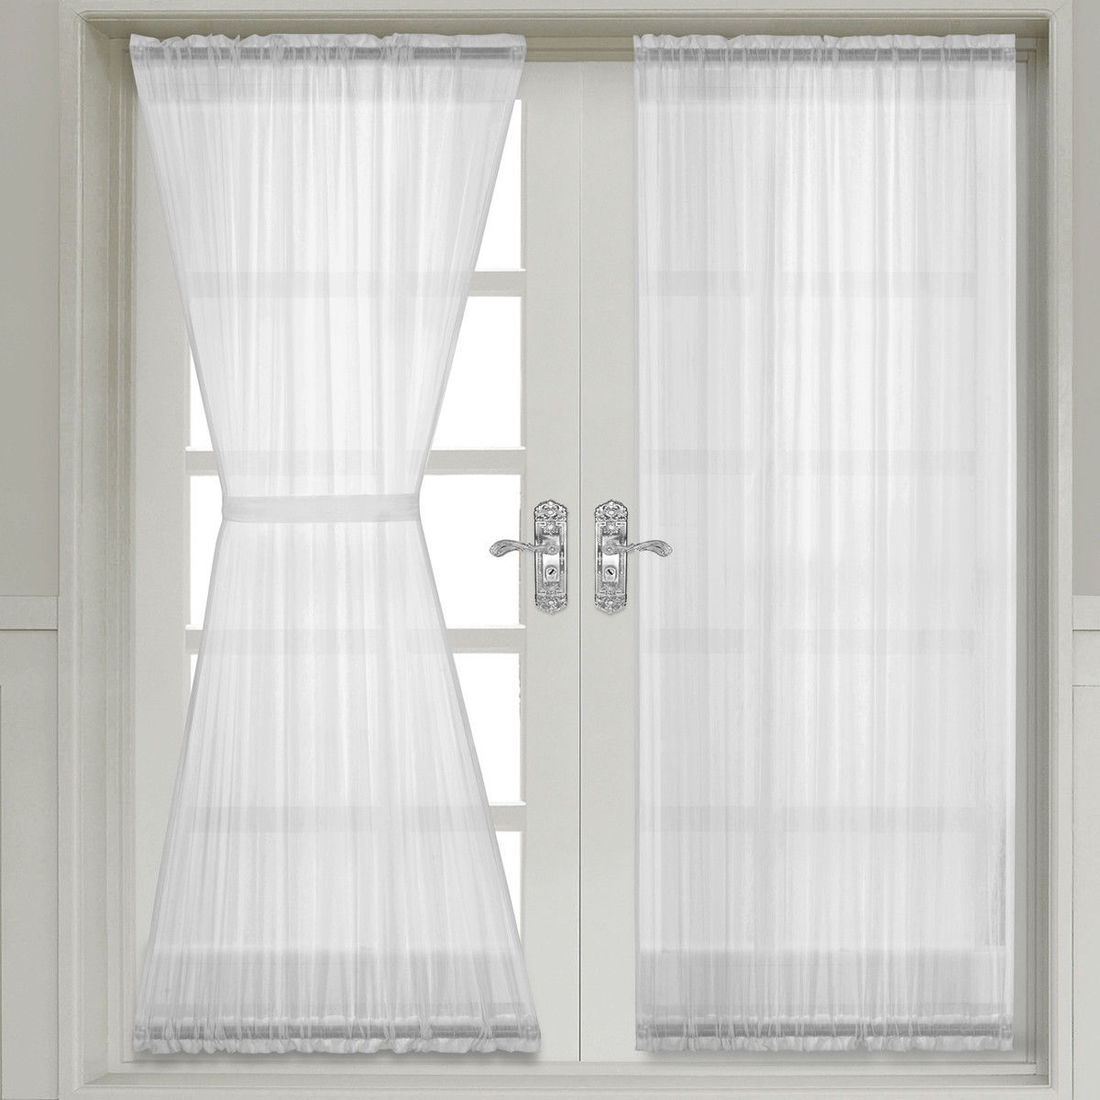 Change The Style And Look Of Your Room With Door Curtains